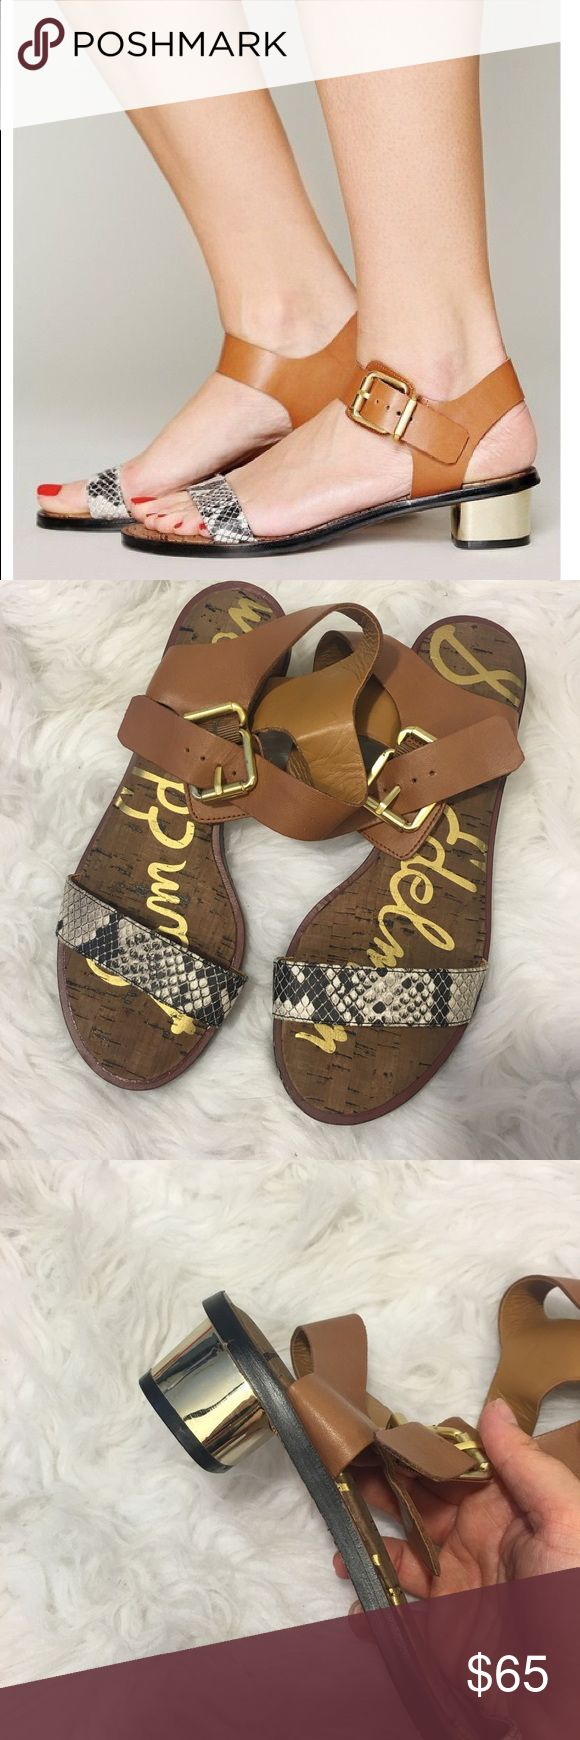 New Sam Edelman Snake Buckle Sandals So cute and perfect dressed up or down! Brand new and never worn. Camel top strap with snake print at the toe. Gold hardware and heel. No trades!! 072017120gwb Sam Edelman Shoes Sandals